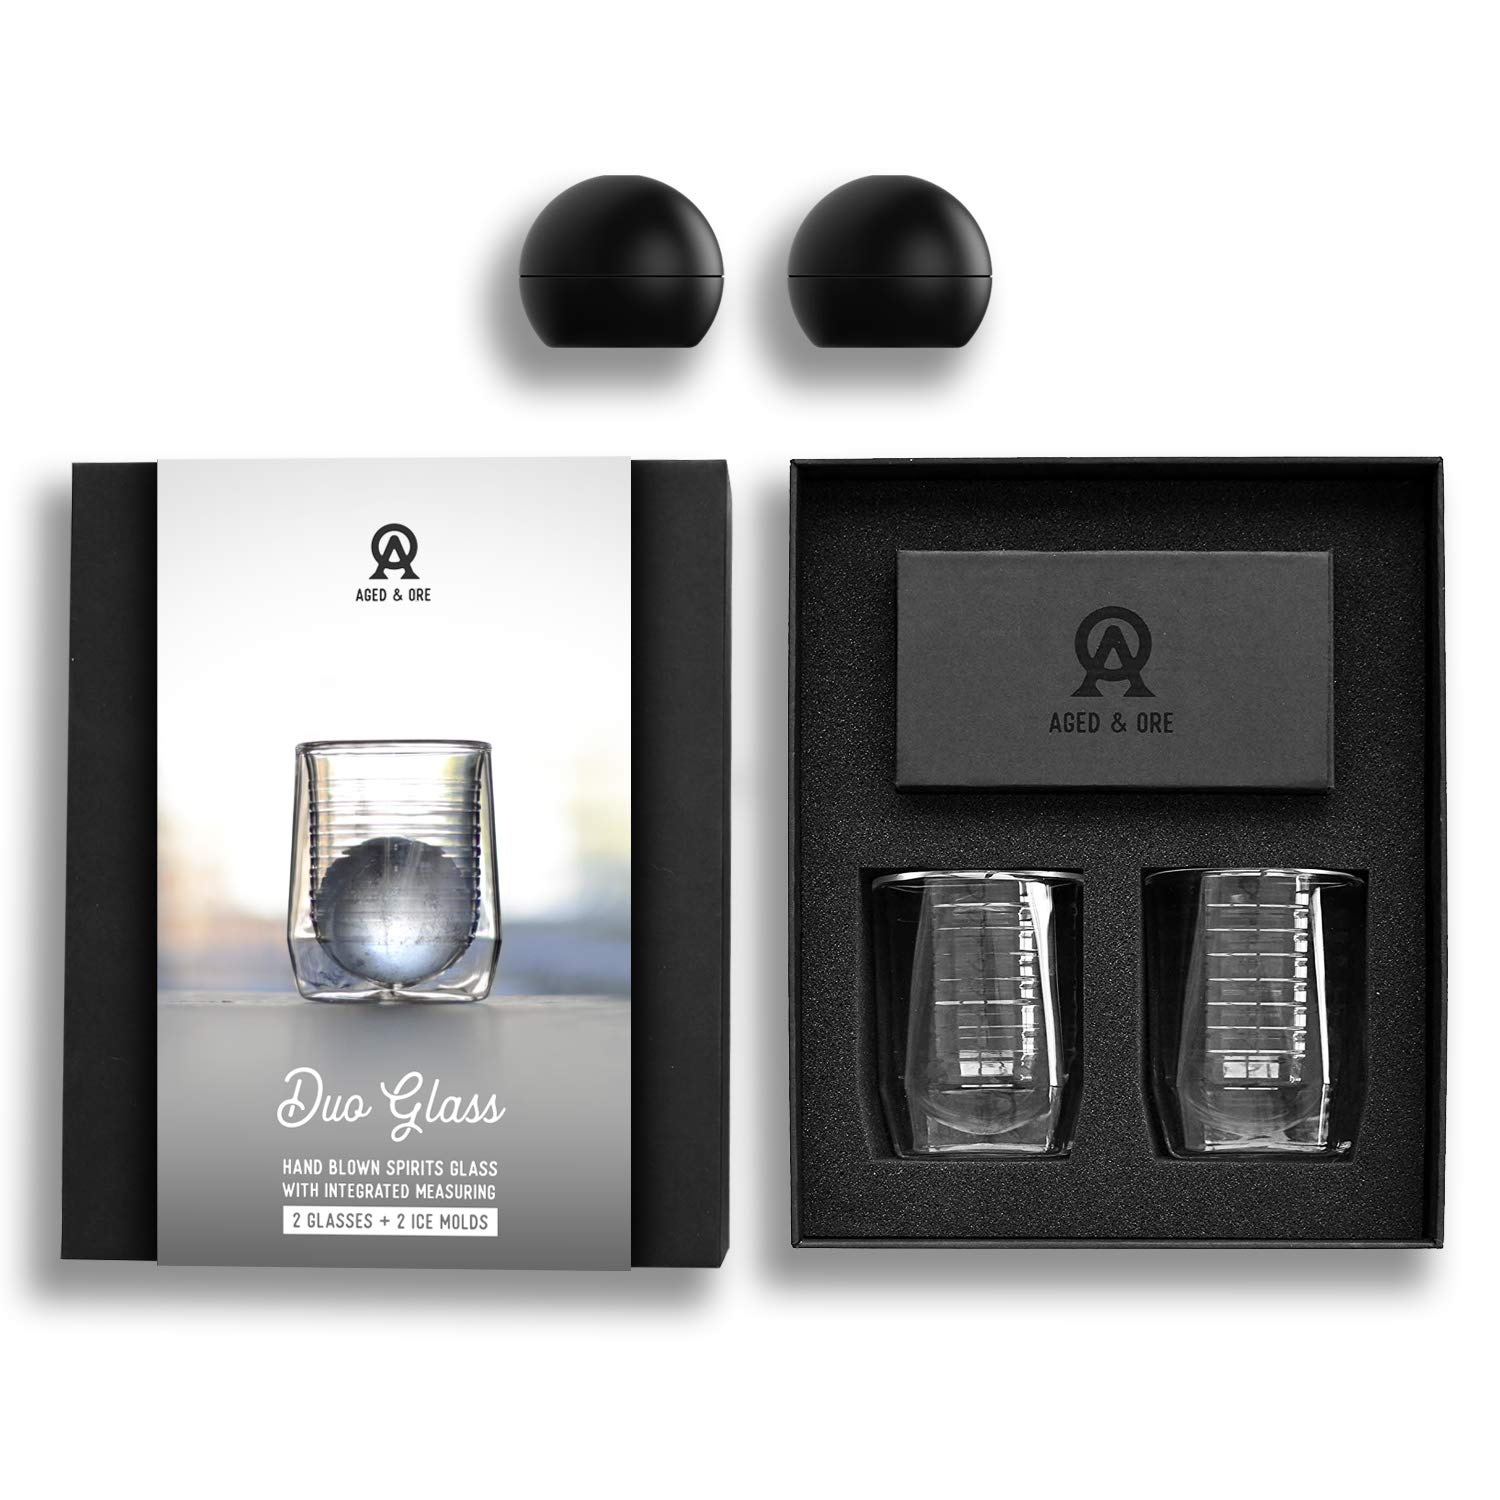 Aged & Ore - The Duo Glass | Hand Blown Double Walled Whiskey Glass Gift Set with Free Silicone Ice Molds | Integrated Measuring Lines for the Perfect Cocktail | Durable Modern Tumbler | Set of 2 by Aged & Ore